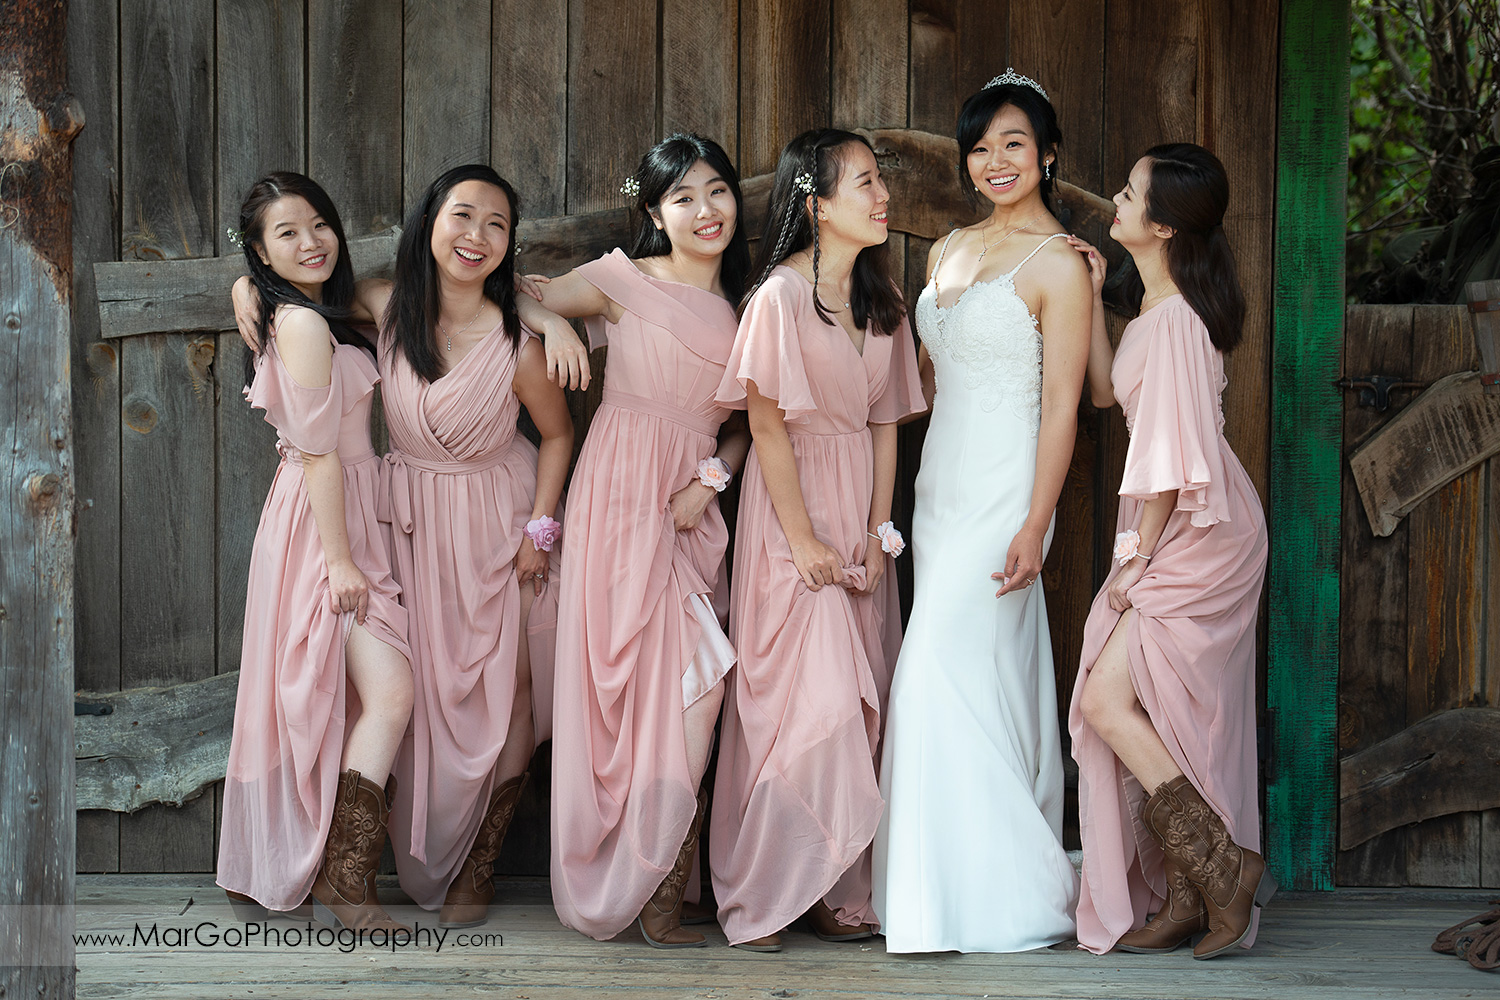 full body portrait of bride in white dress and bridesmaids in pink dresses at Long Branch Saloon & Farms in Half Moon Bay